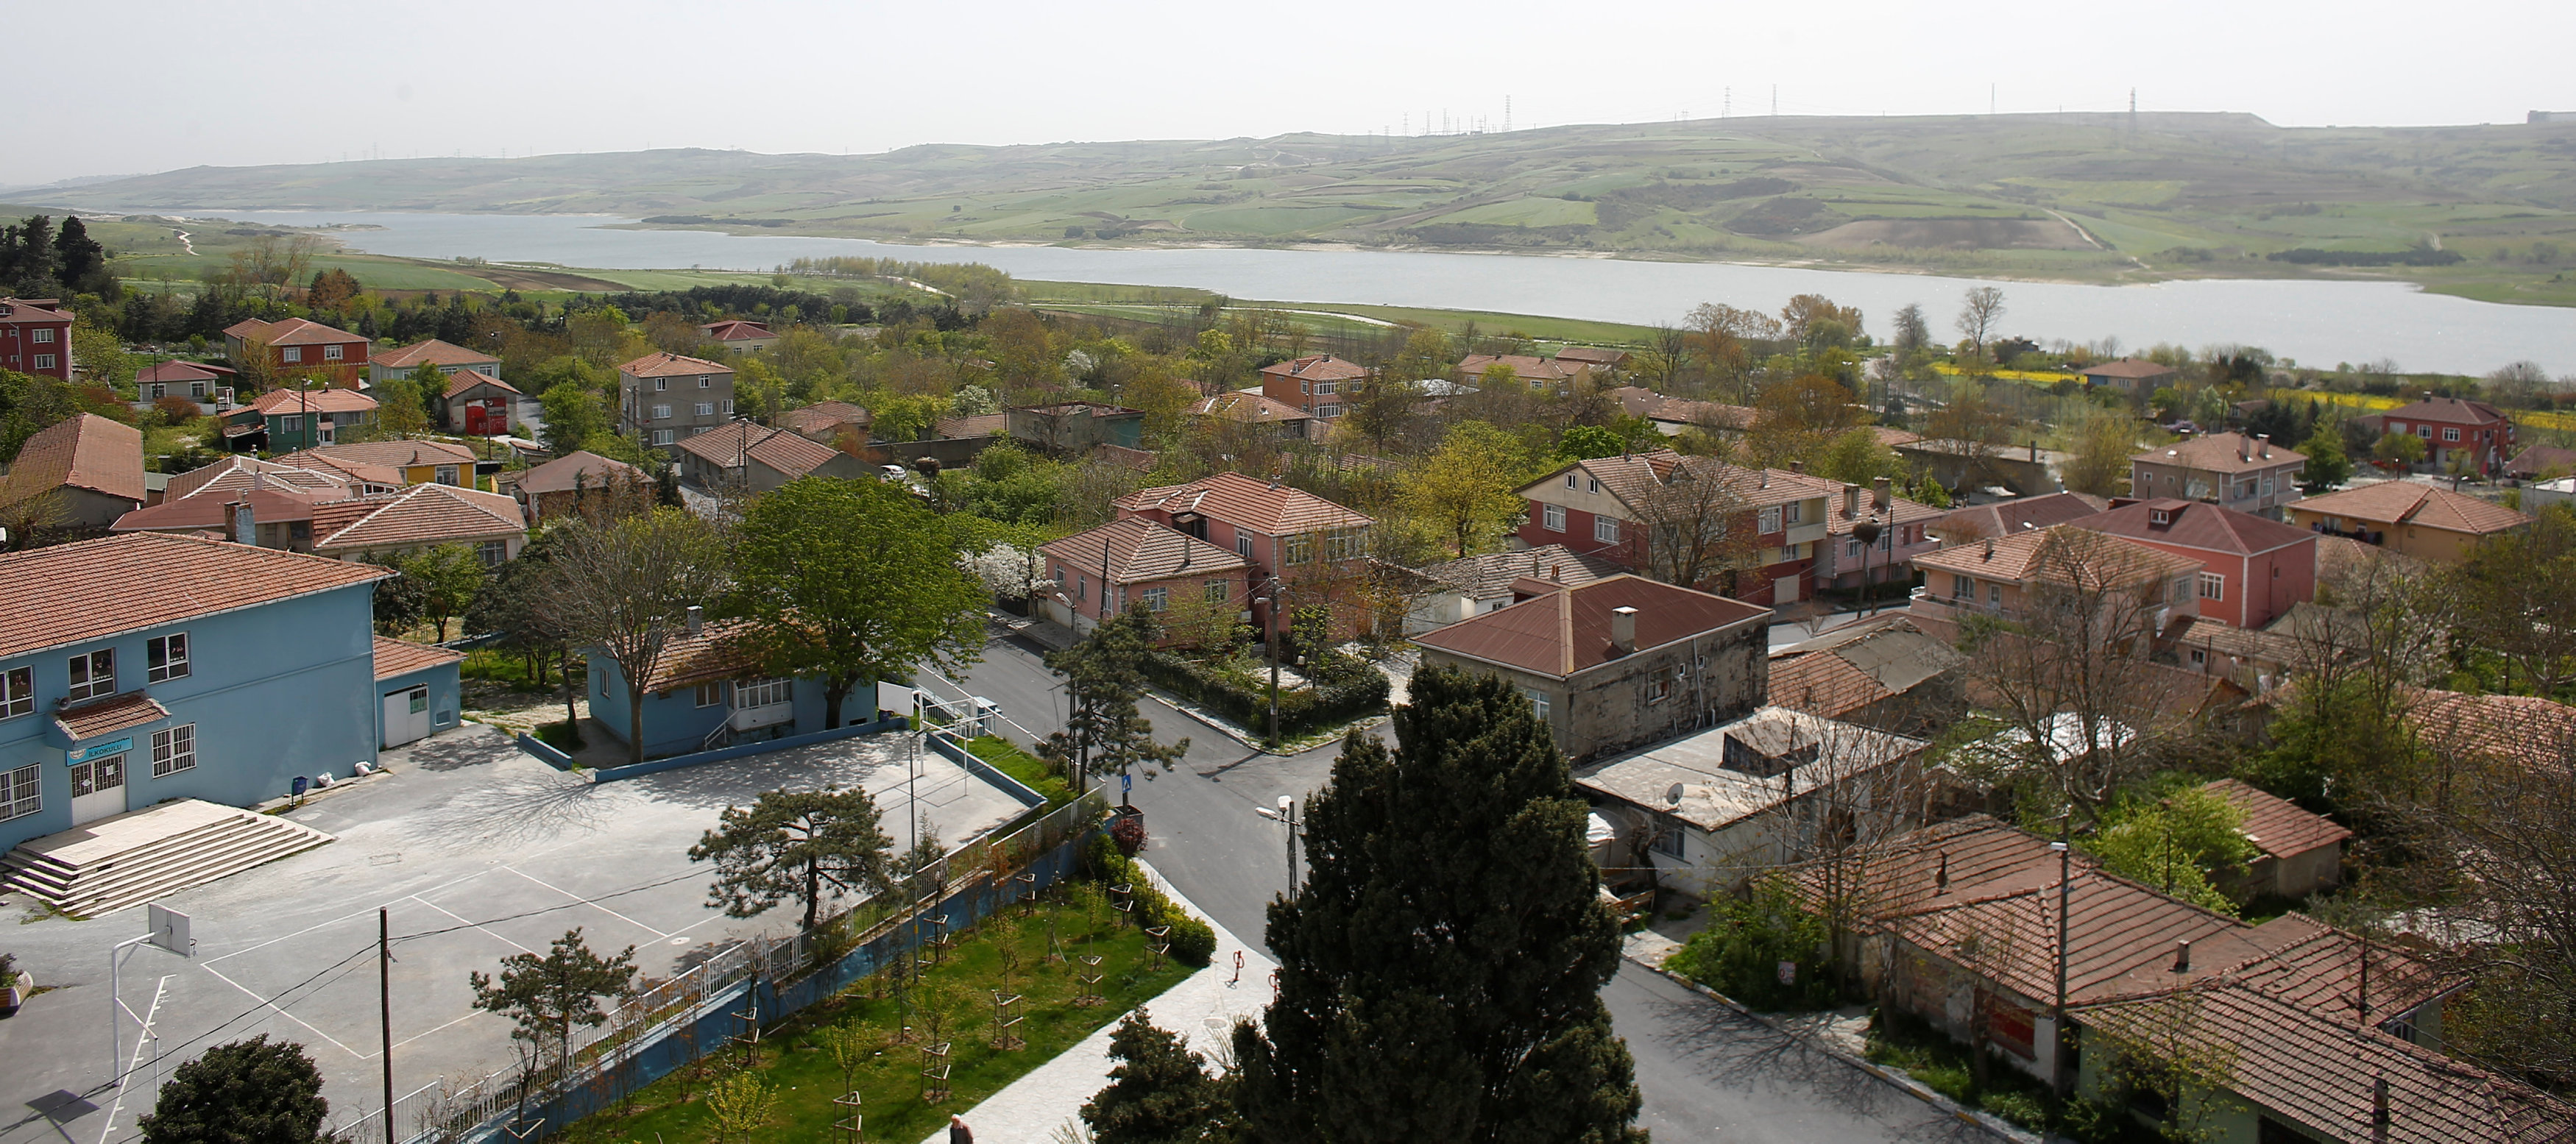 A general view shows the village of Sazlibosna in Istanbul, Turkey, April 16, 2018. Picture taken April 16, 2018. REUTERS/Osman Orsal